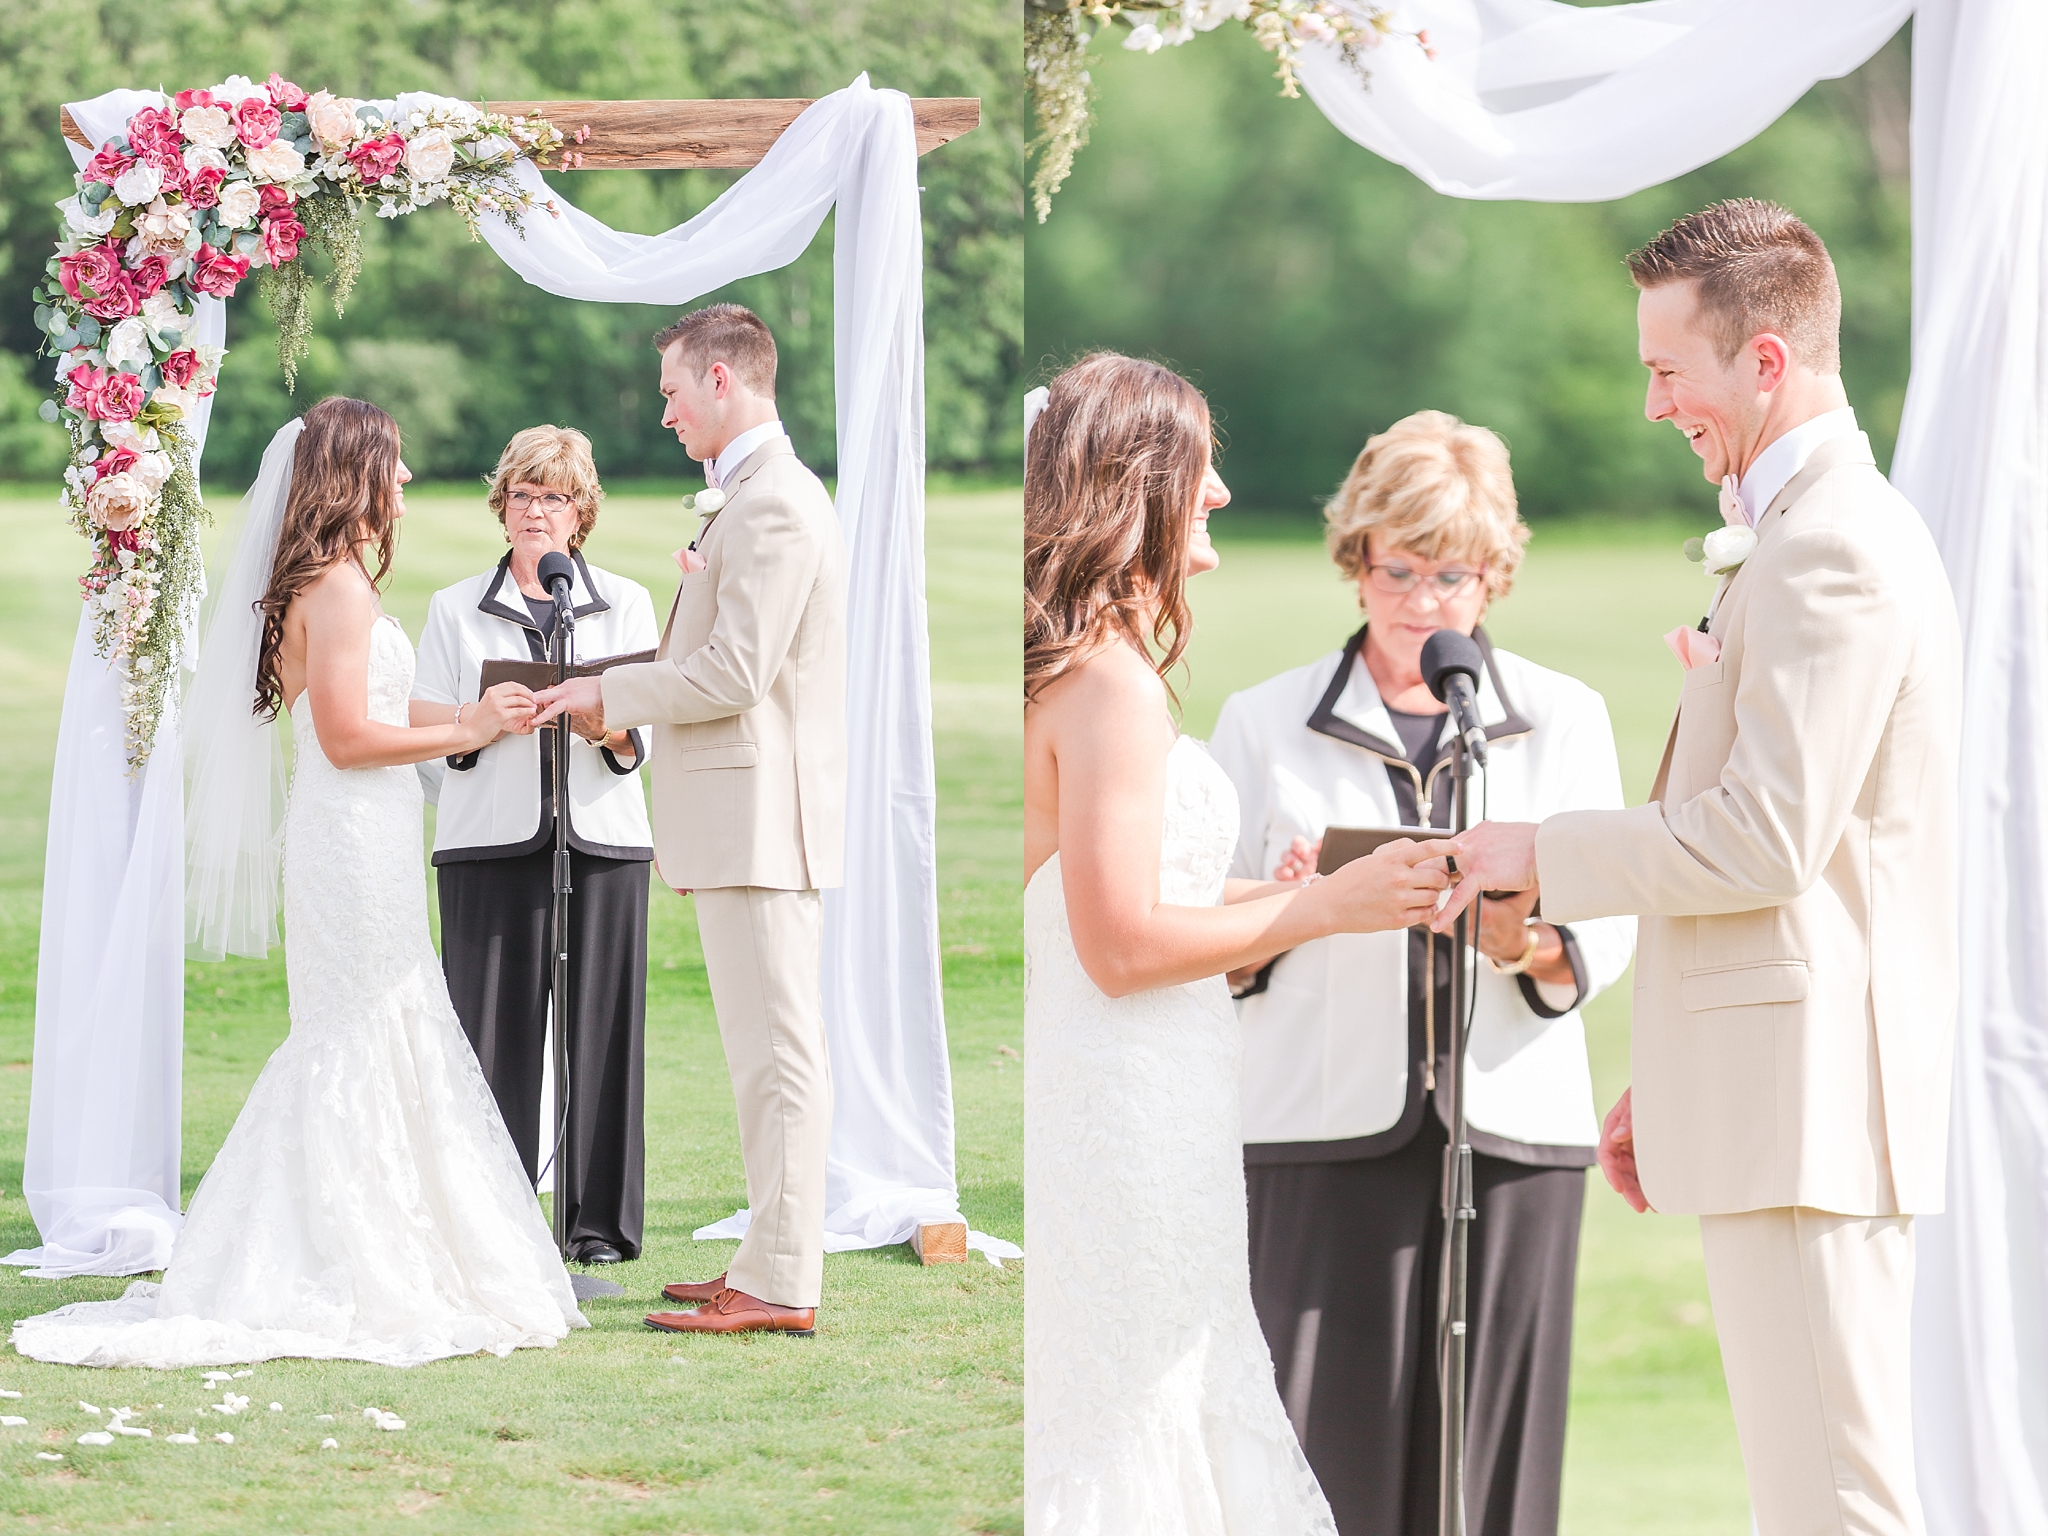 candid-timeless-wedding-photos-at-the-captains-club-in-grand-blanc-michigan-by-courtney-carolyn-photography_0049.jpg